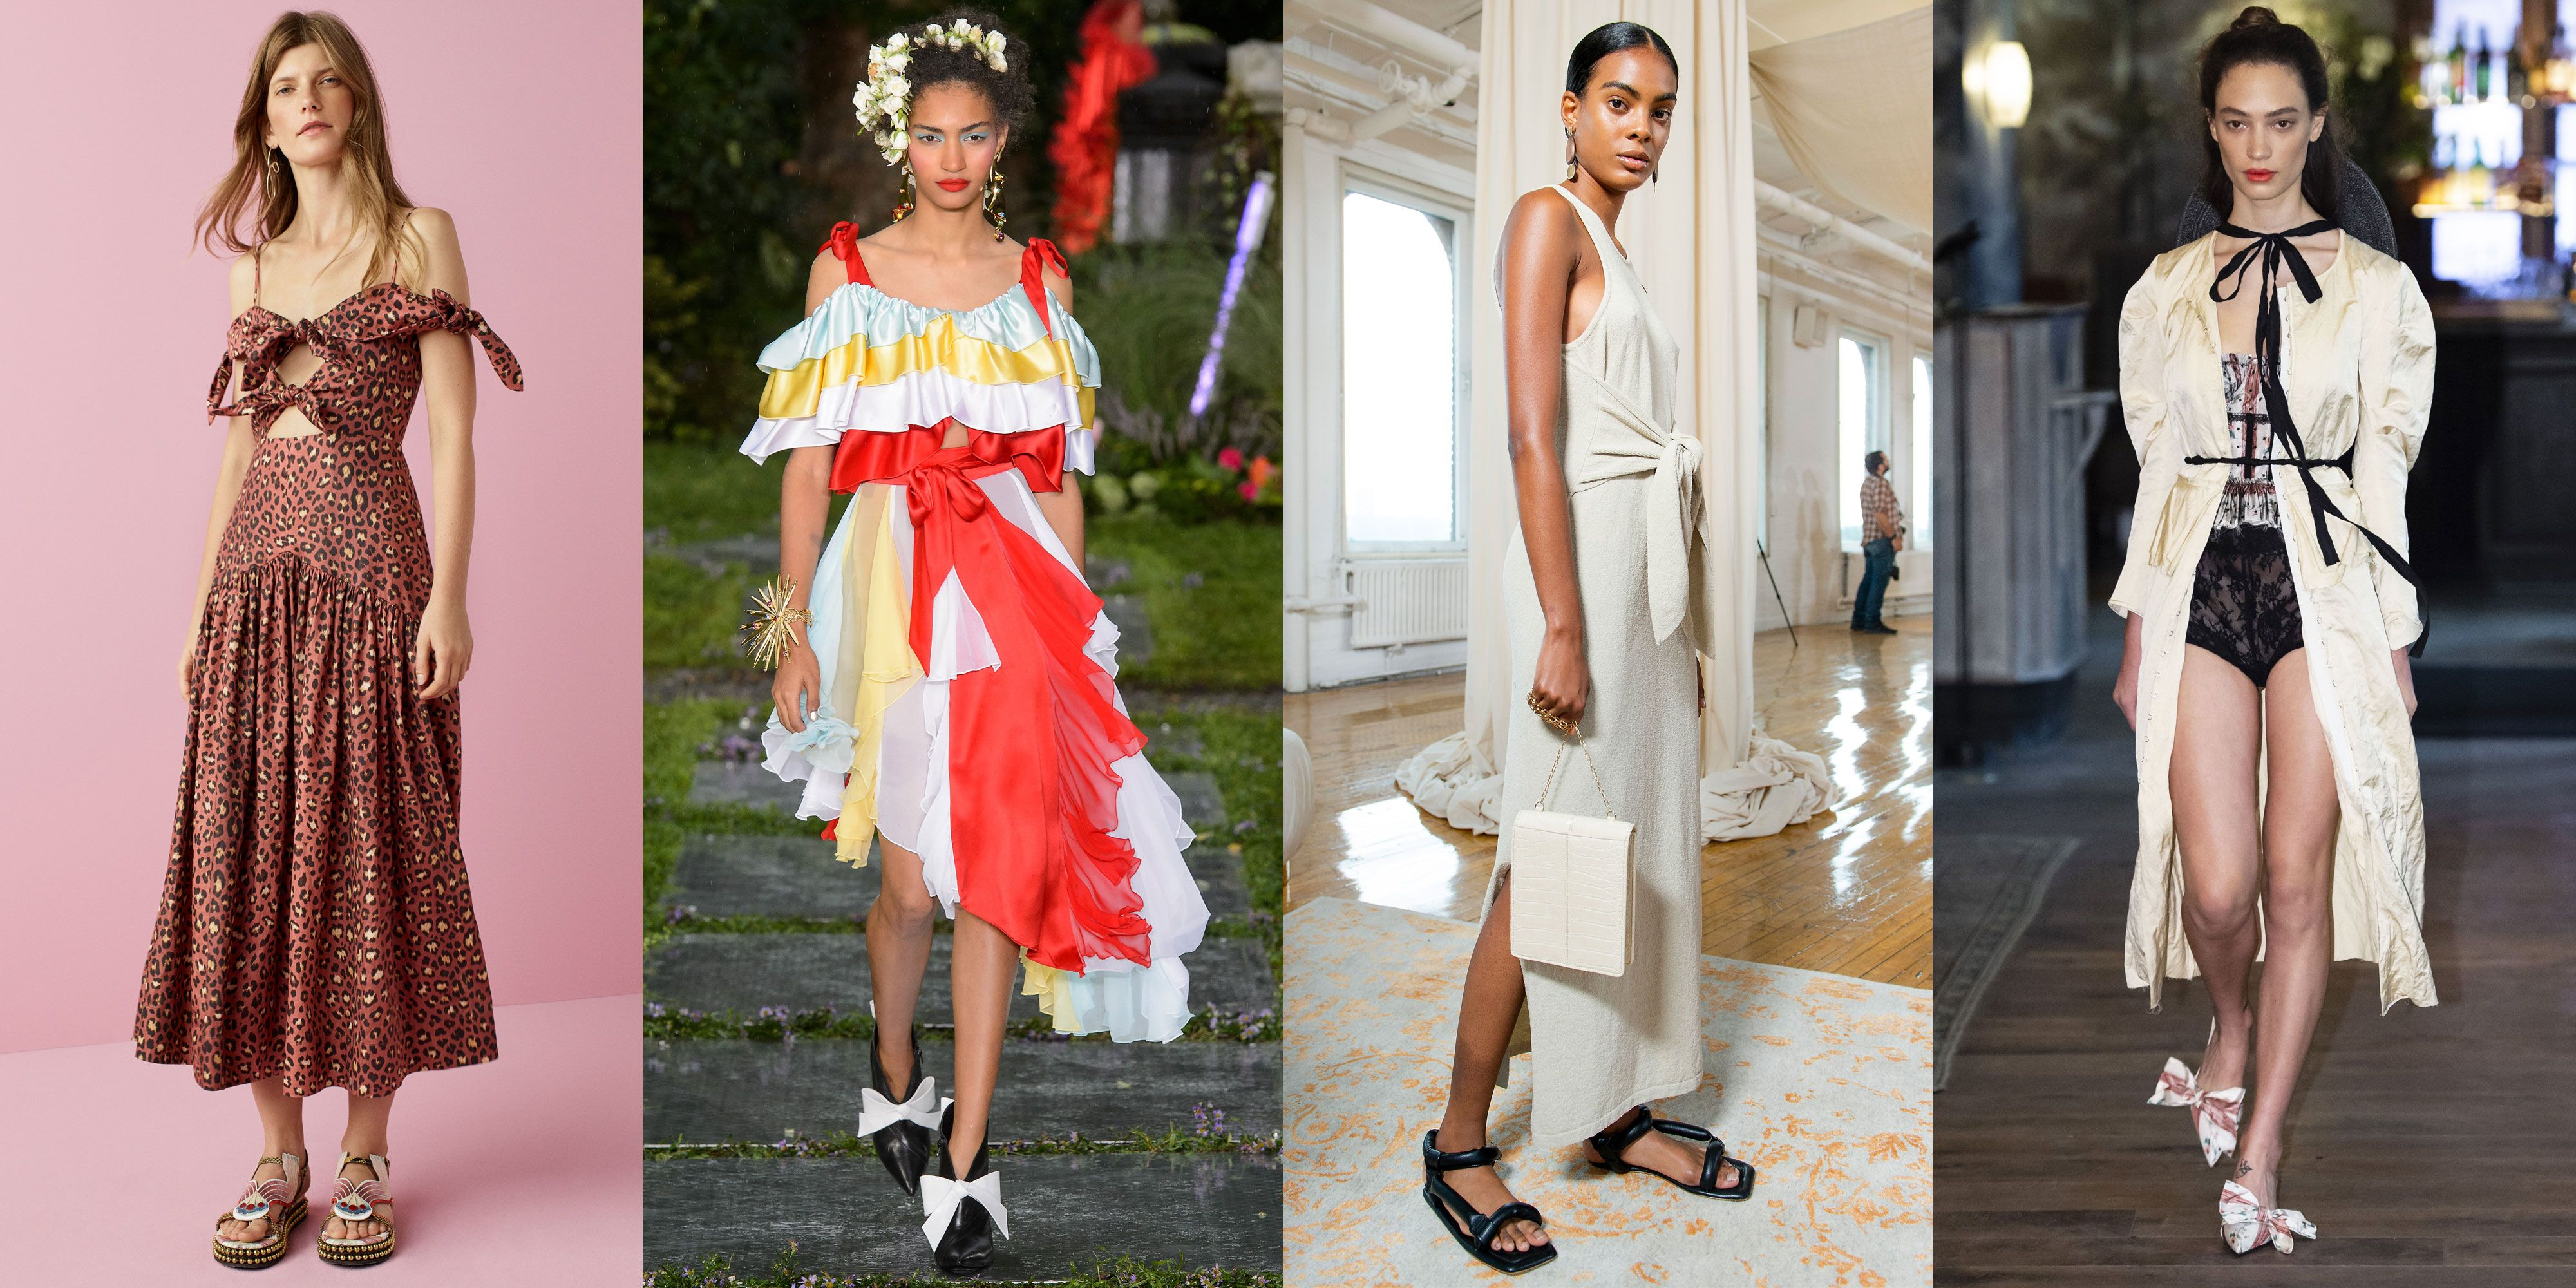 2d84e064e1c0 Spring 2019 Fashion Trends - Spring Clothing Styles to Watch Out For